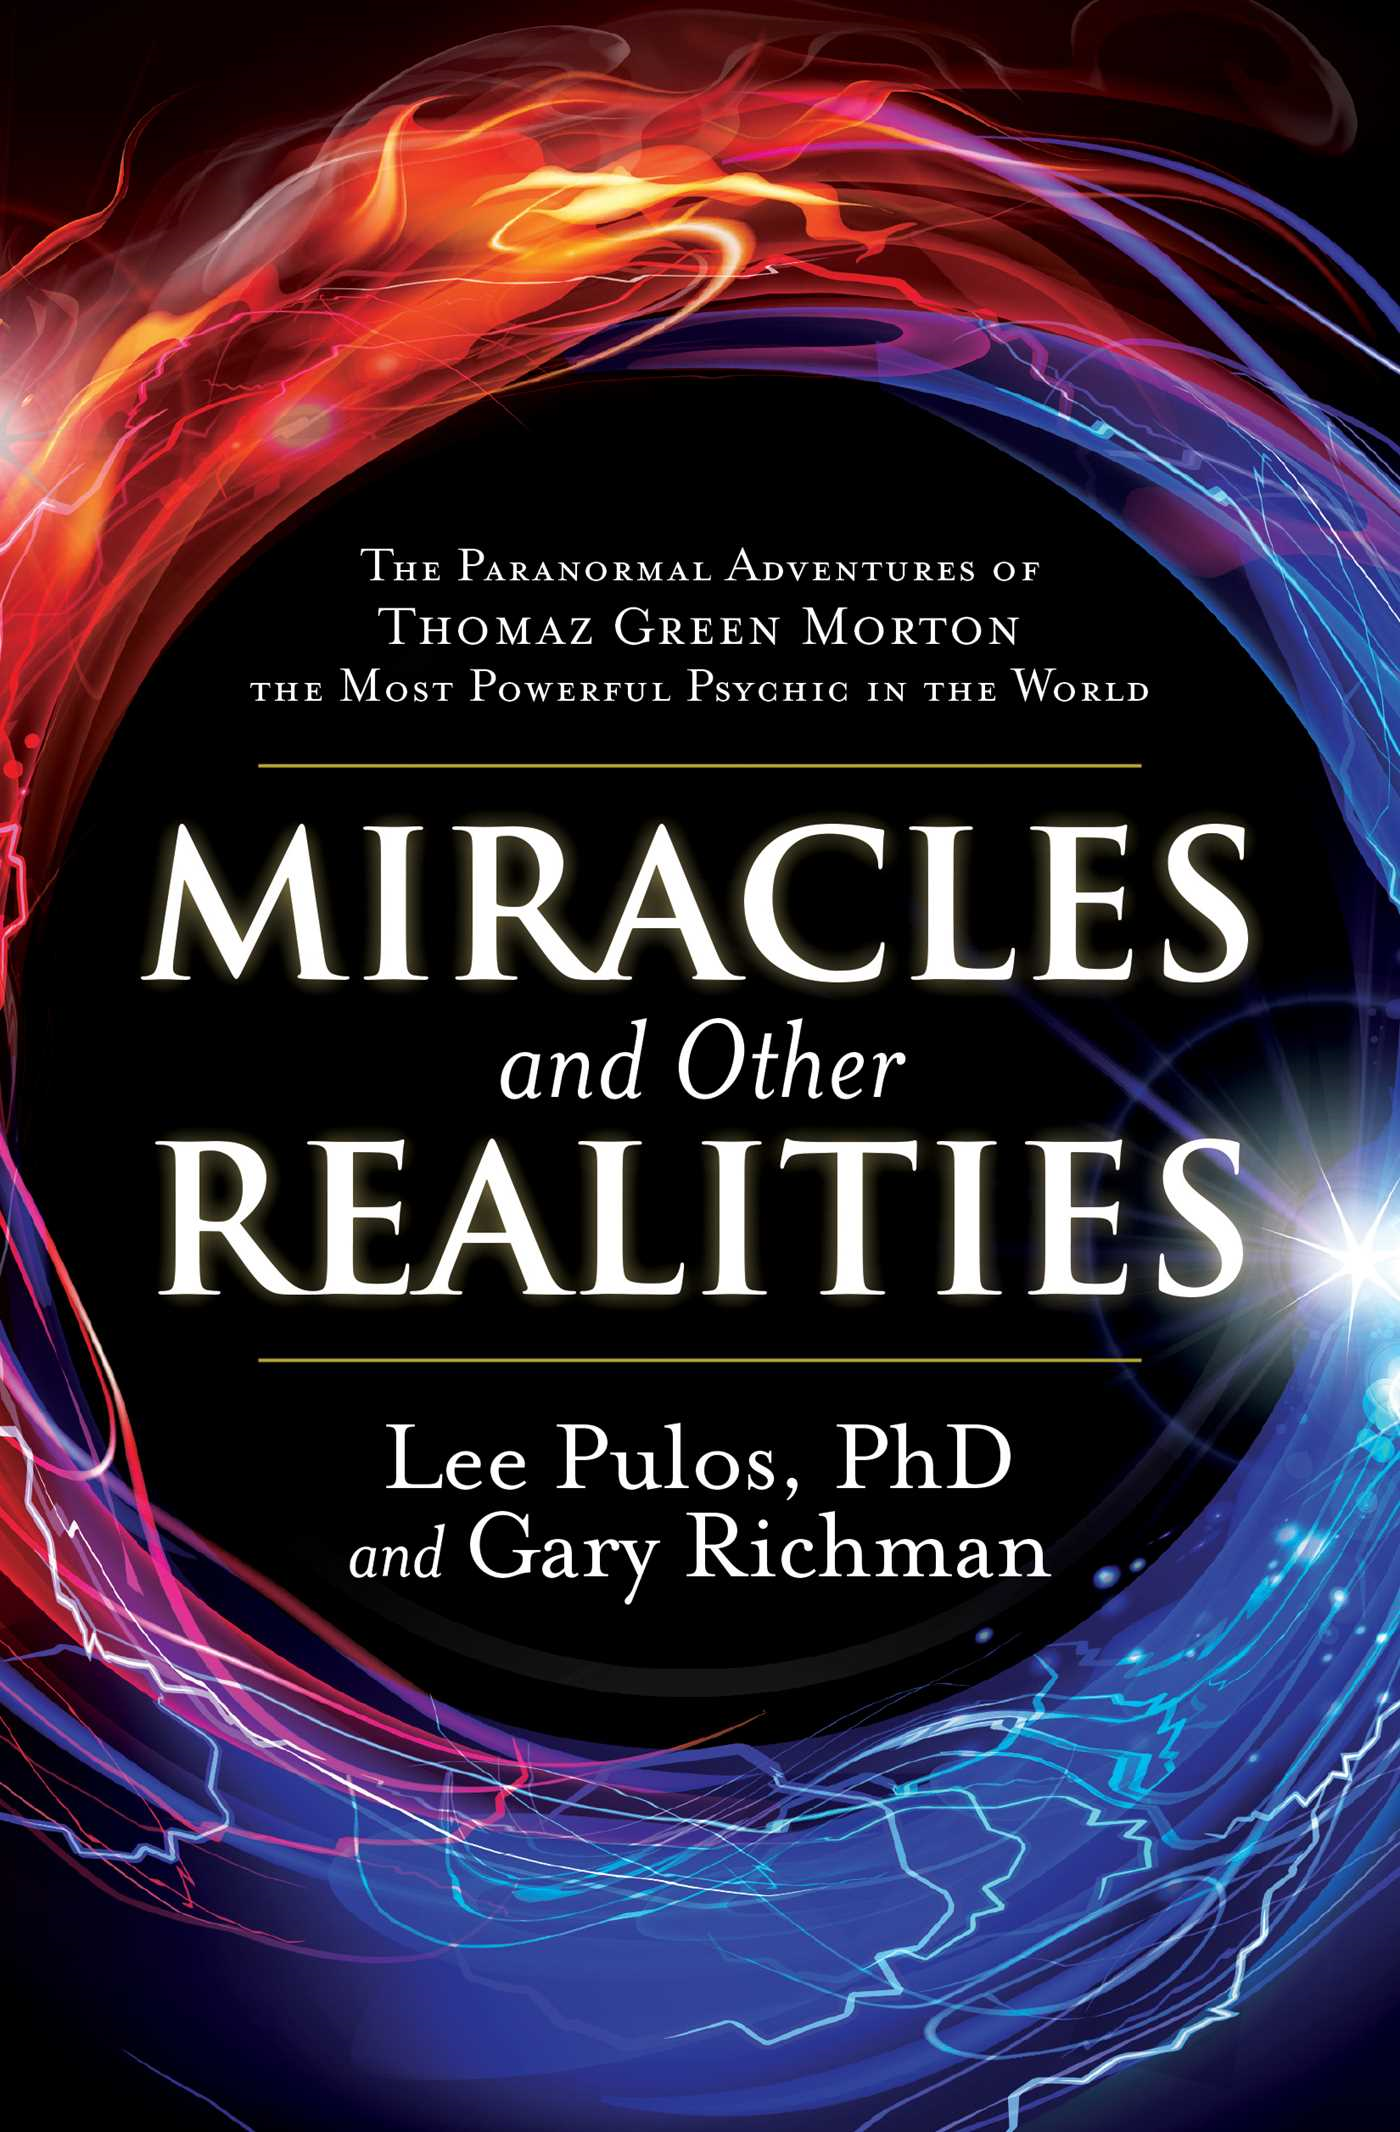 Miracles and Other Realities